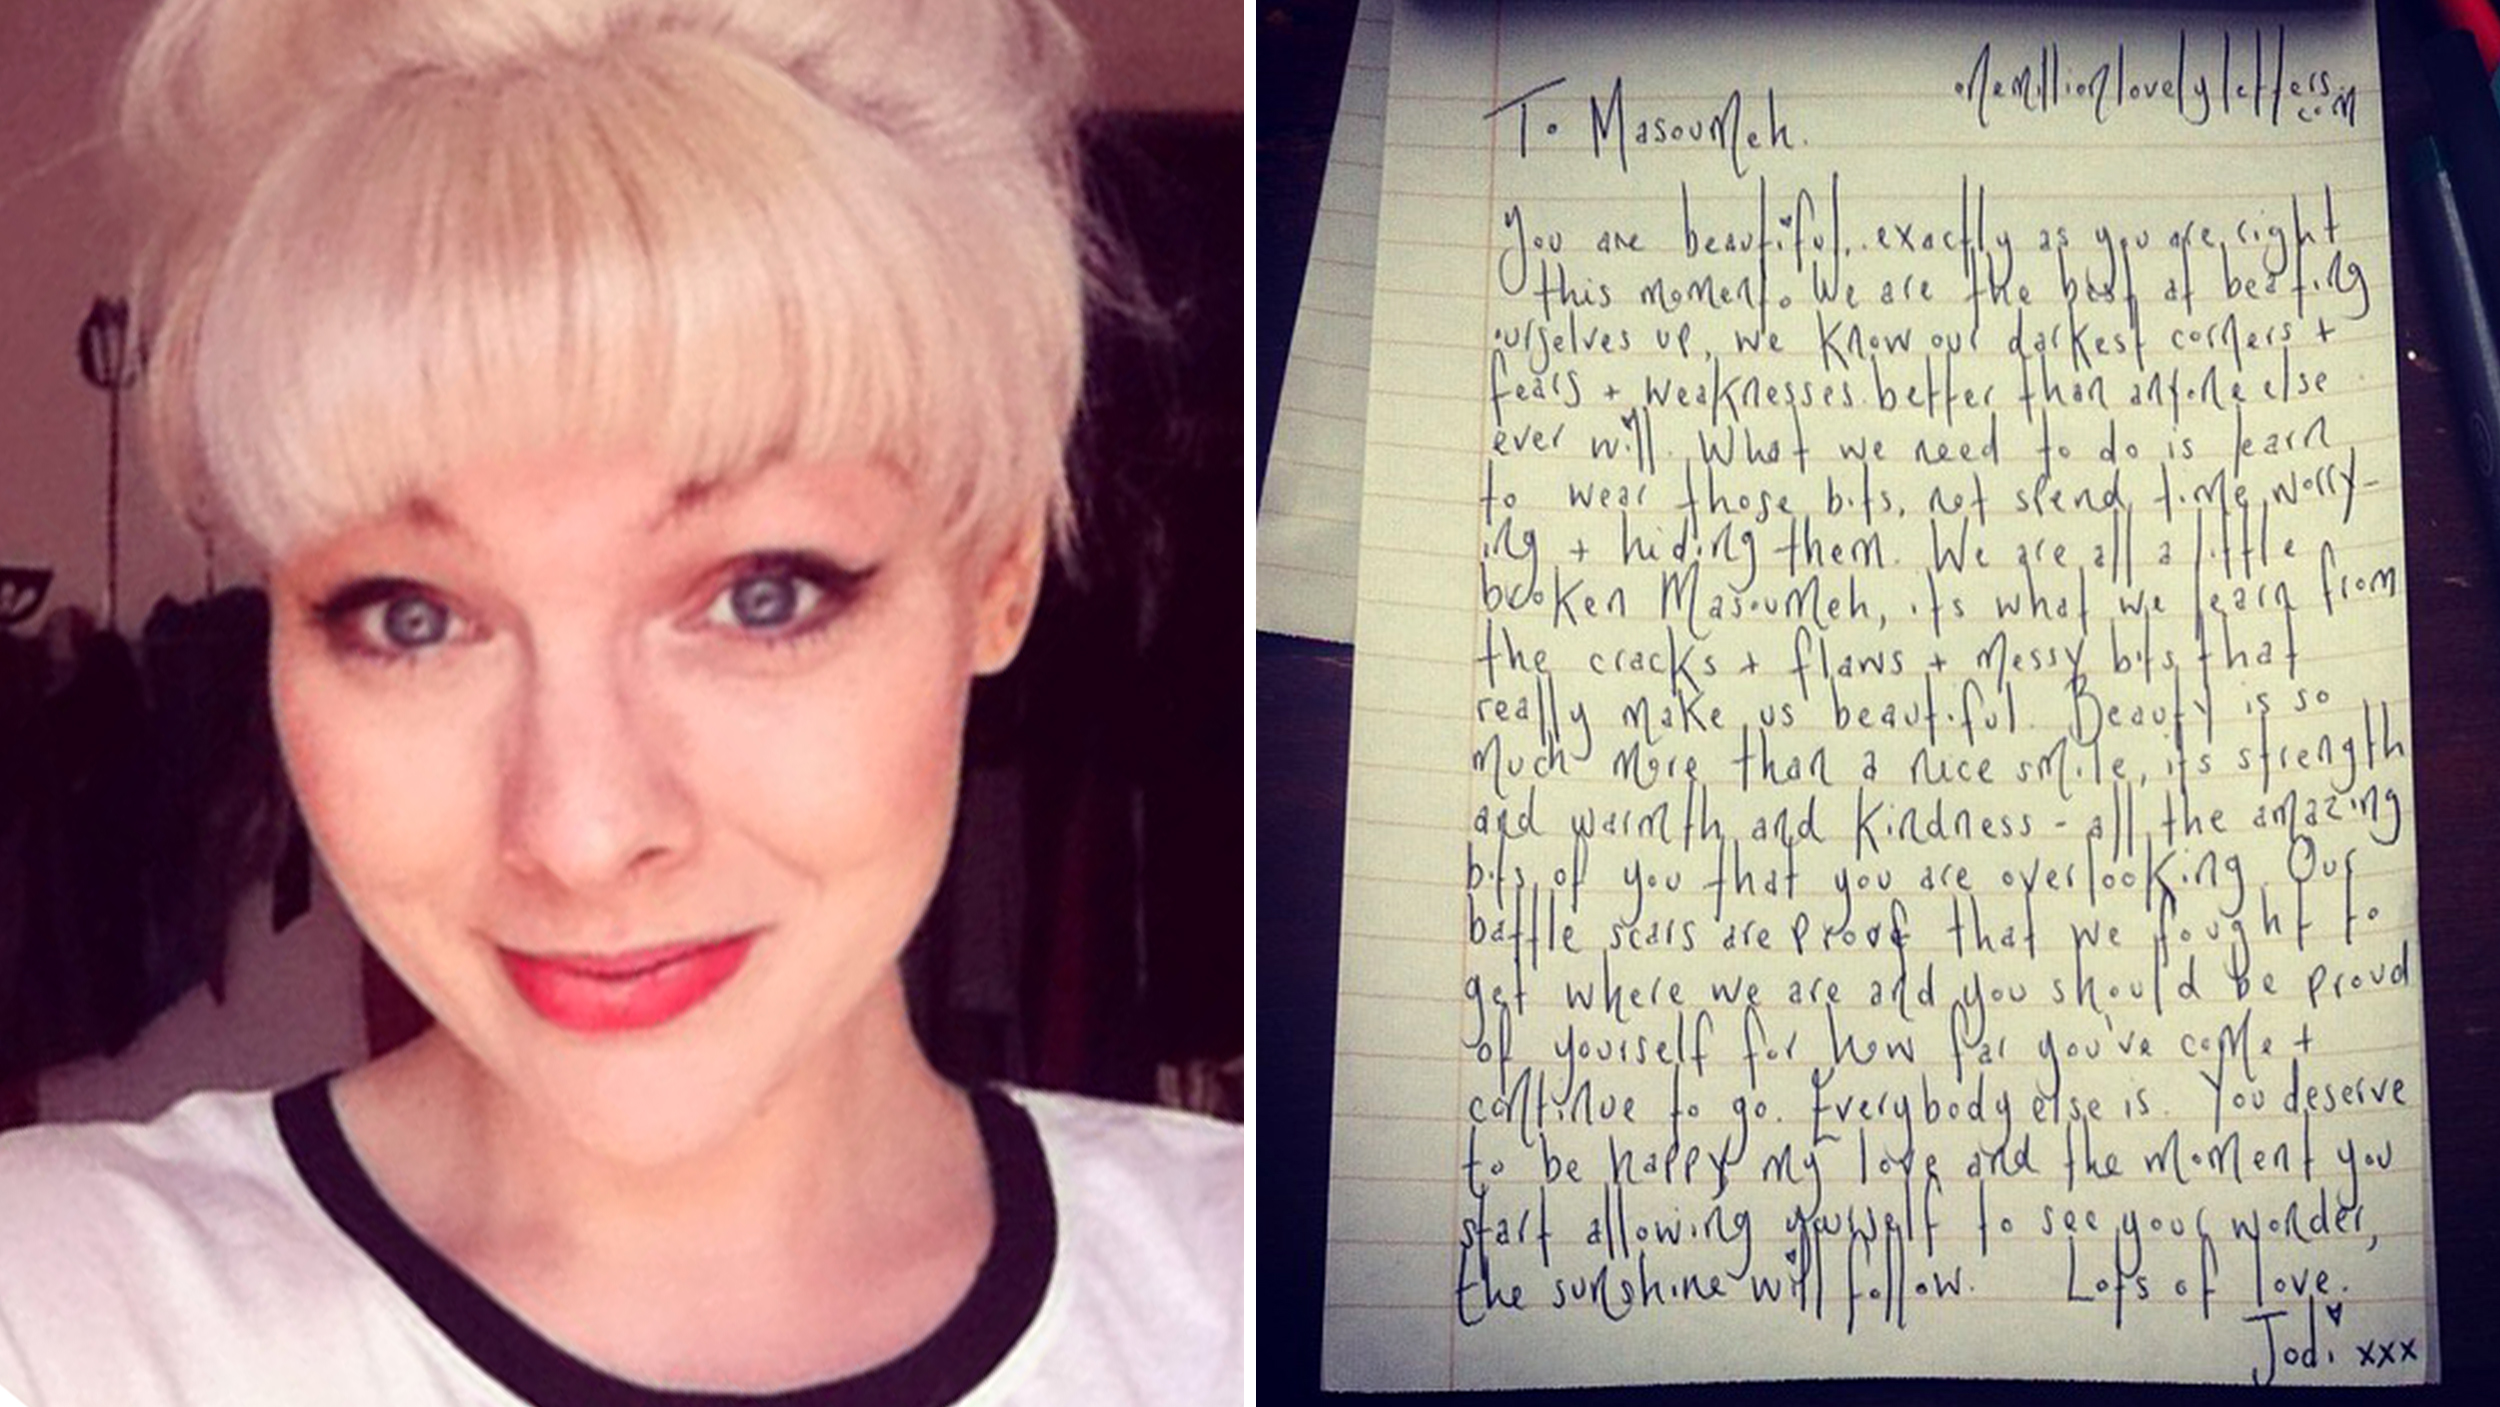 Spreading magic Woman writes 3 000 pick me up letters to strangers